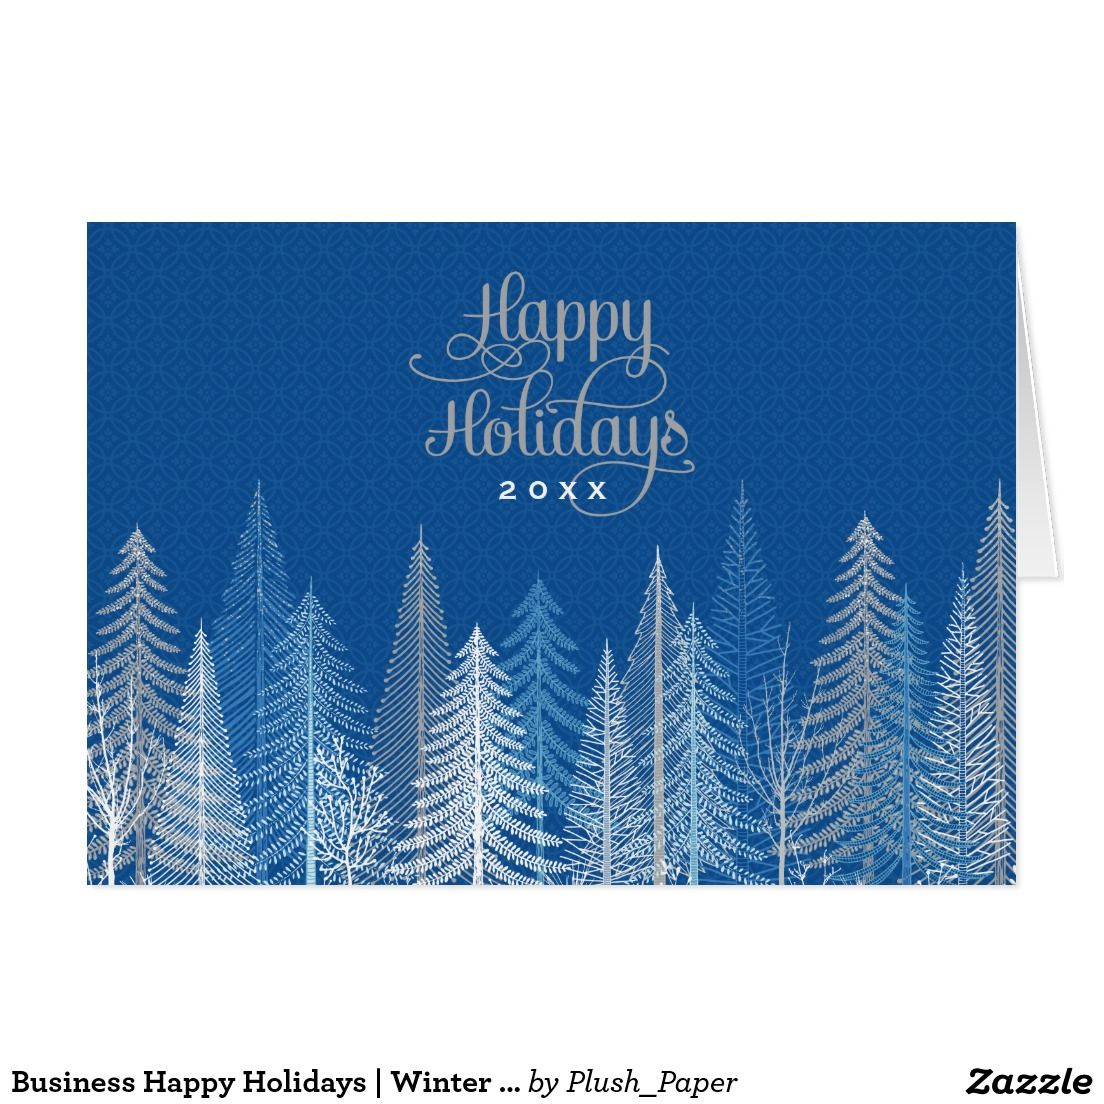 Business Happy Holidays | Winter Scene Holiday Card | Pinterest